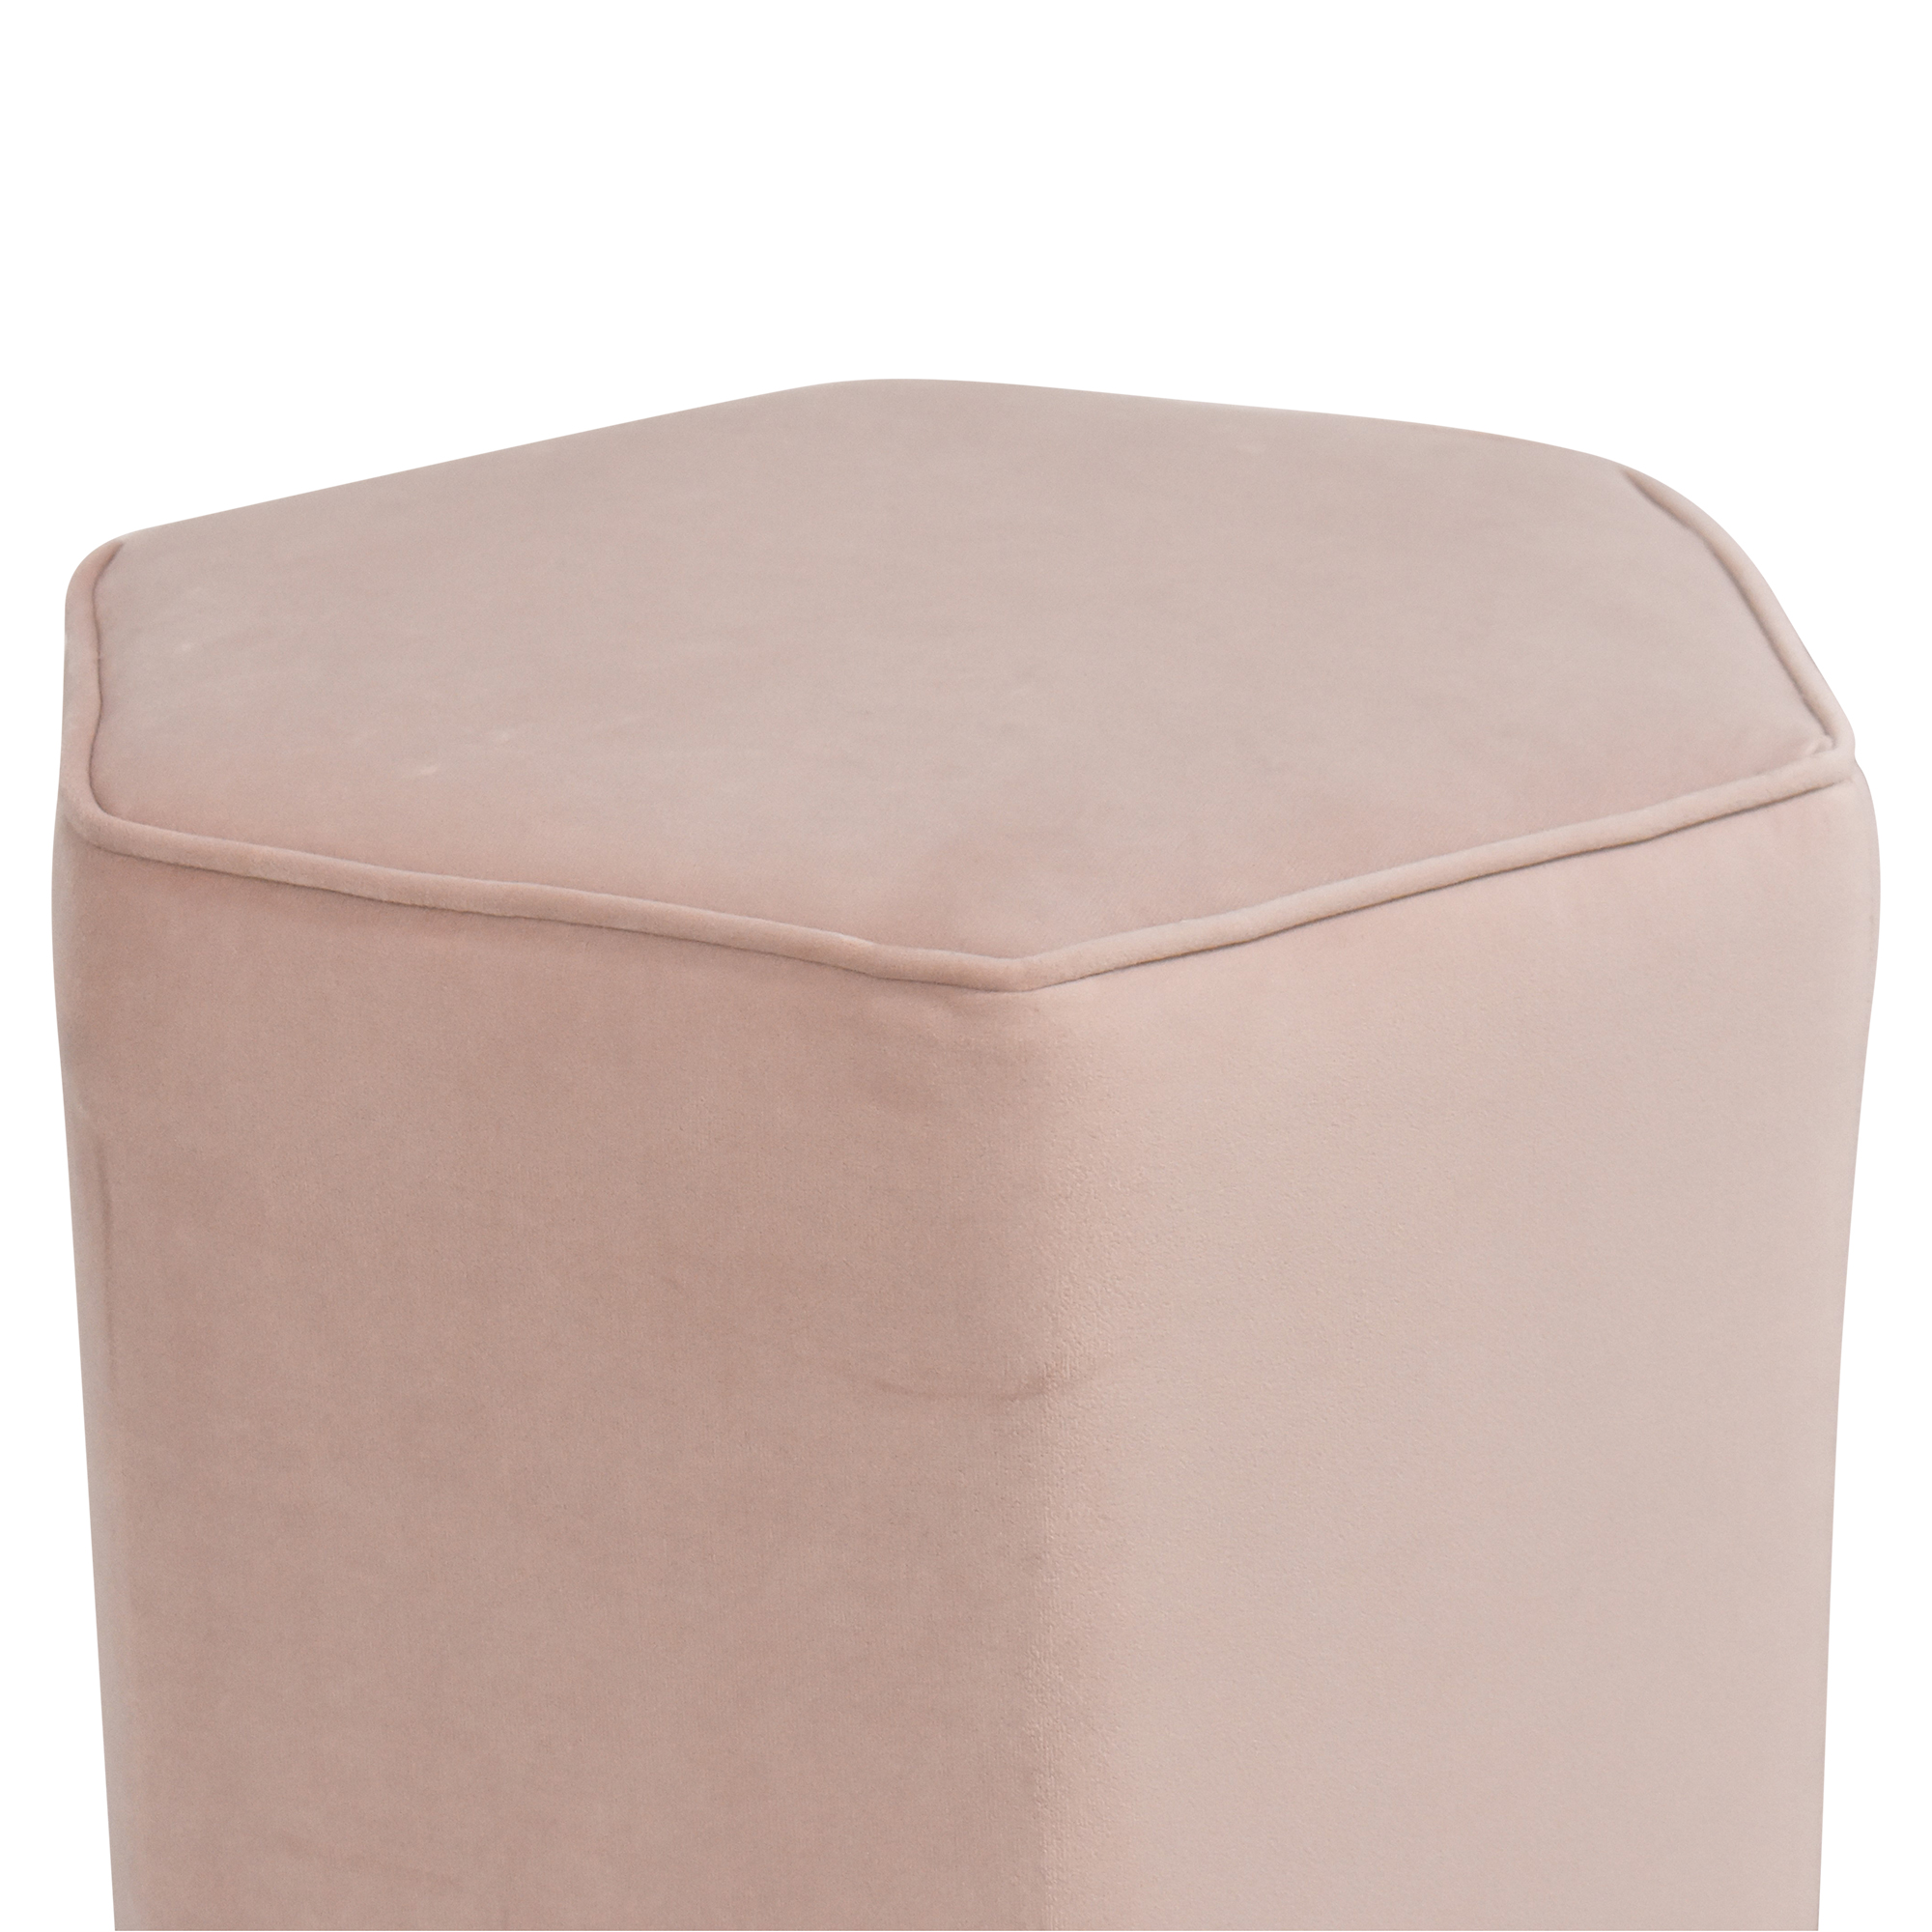 shop The Inside Hexagonal Ottoman The Inside Storage